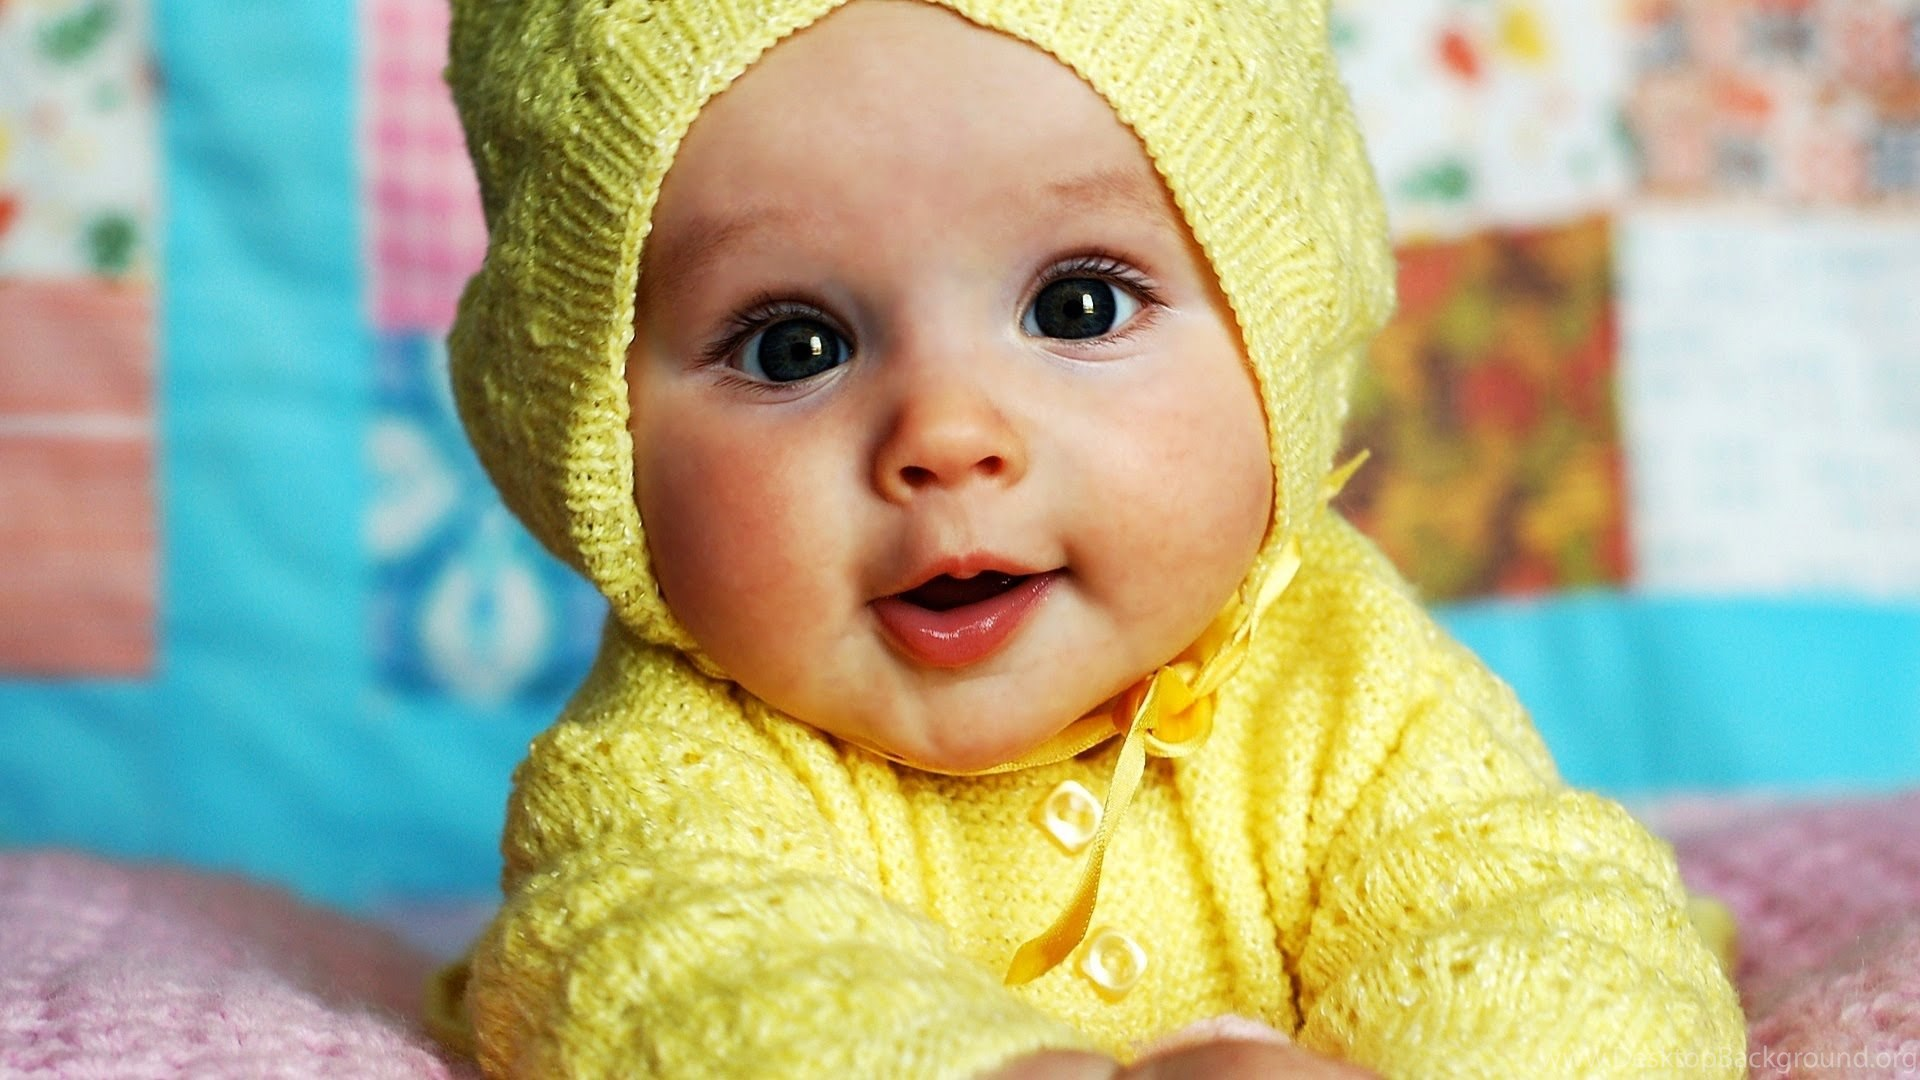 Baby boy hd wallpapers page 0 desktop background popular voltagebd Image collections